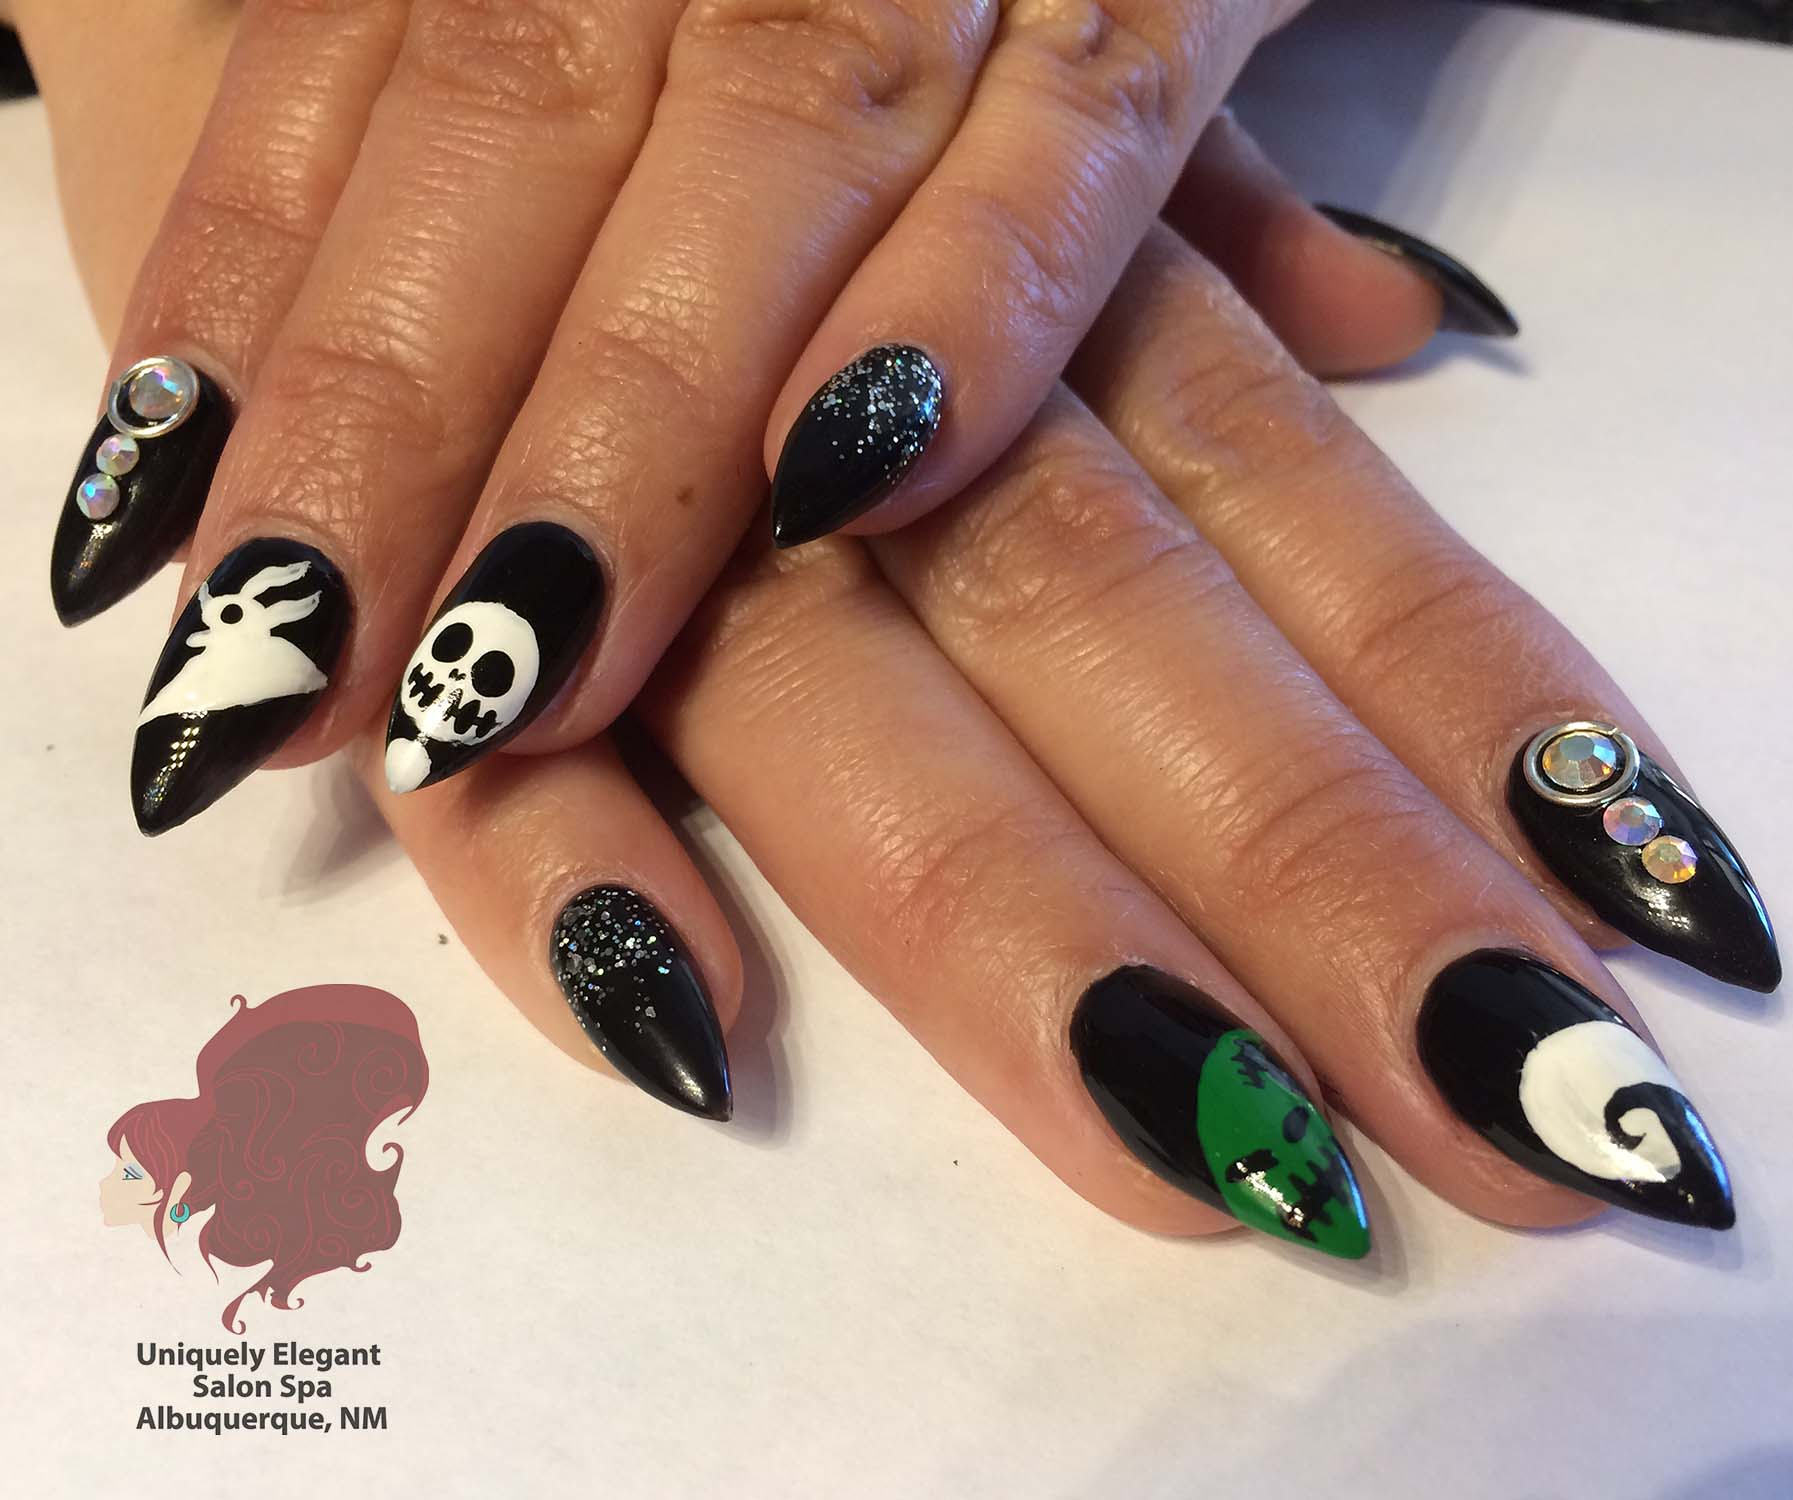 Images tagged sculptured acrylics nails manicure uniquely sculptured acrylic nails halloween nail art abq prinsesfo Image collections